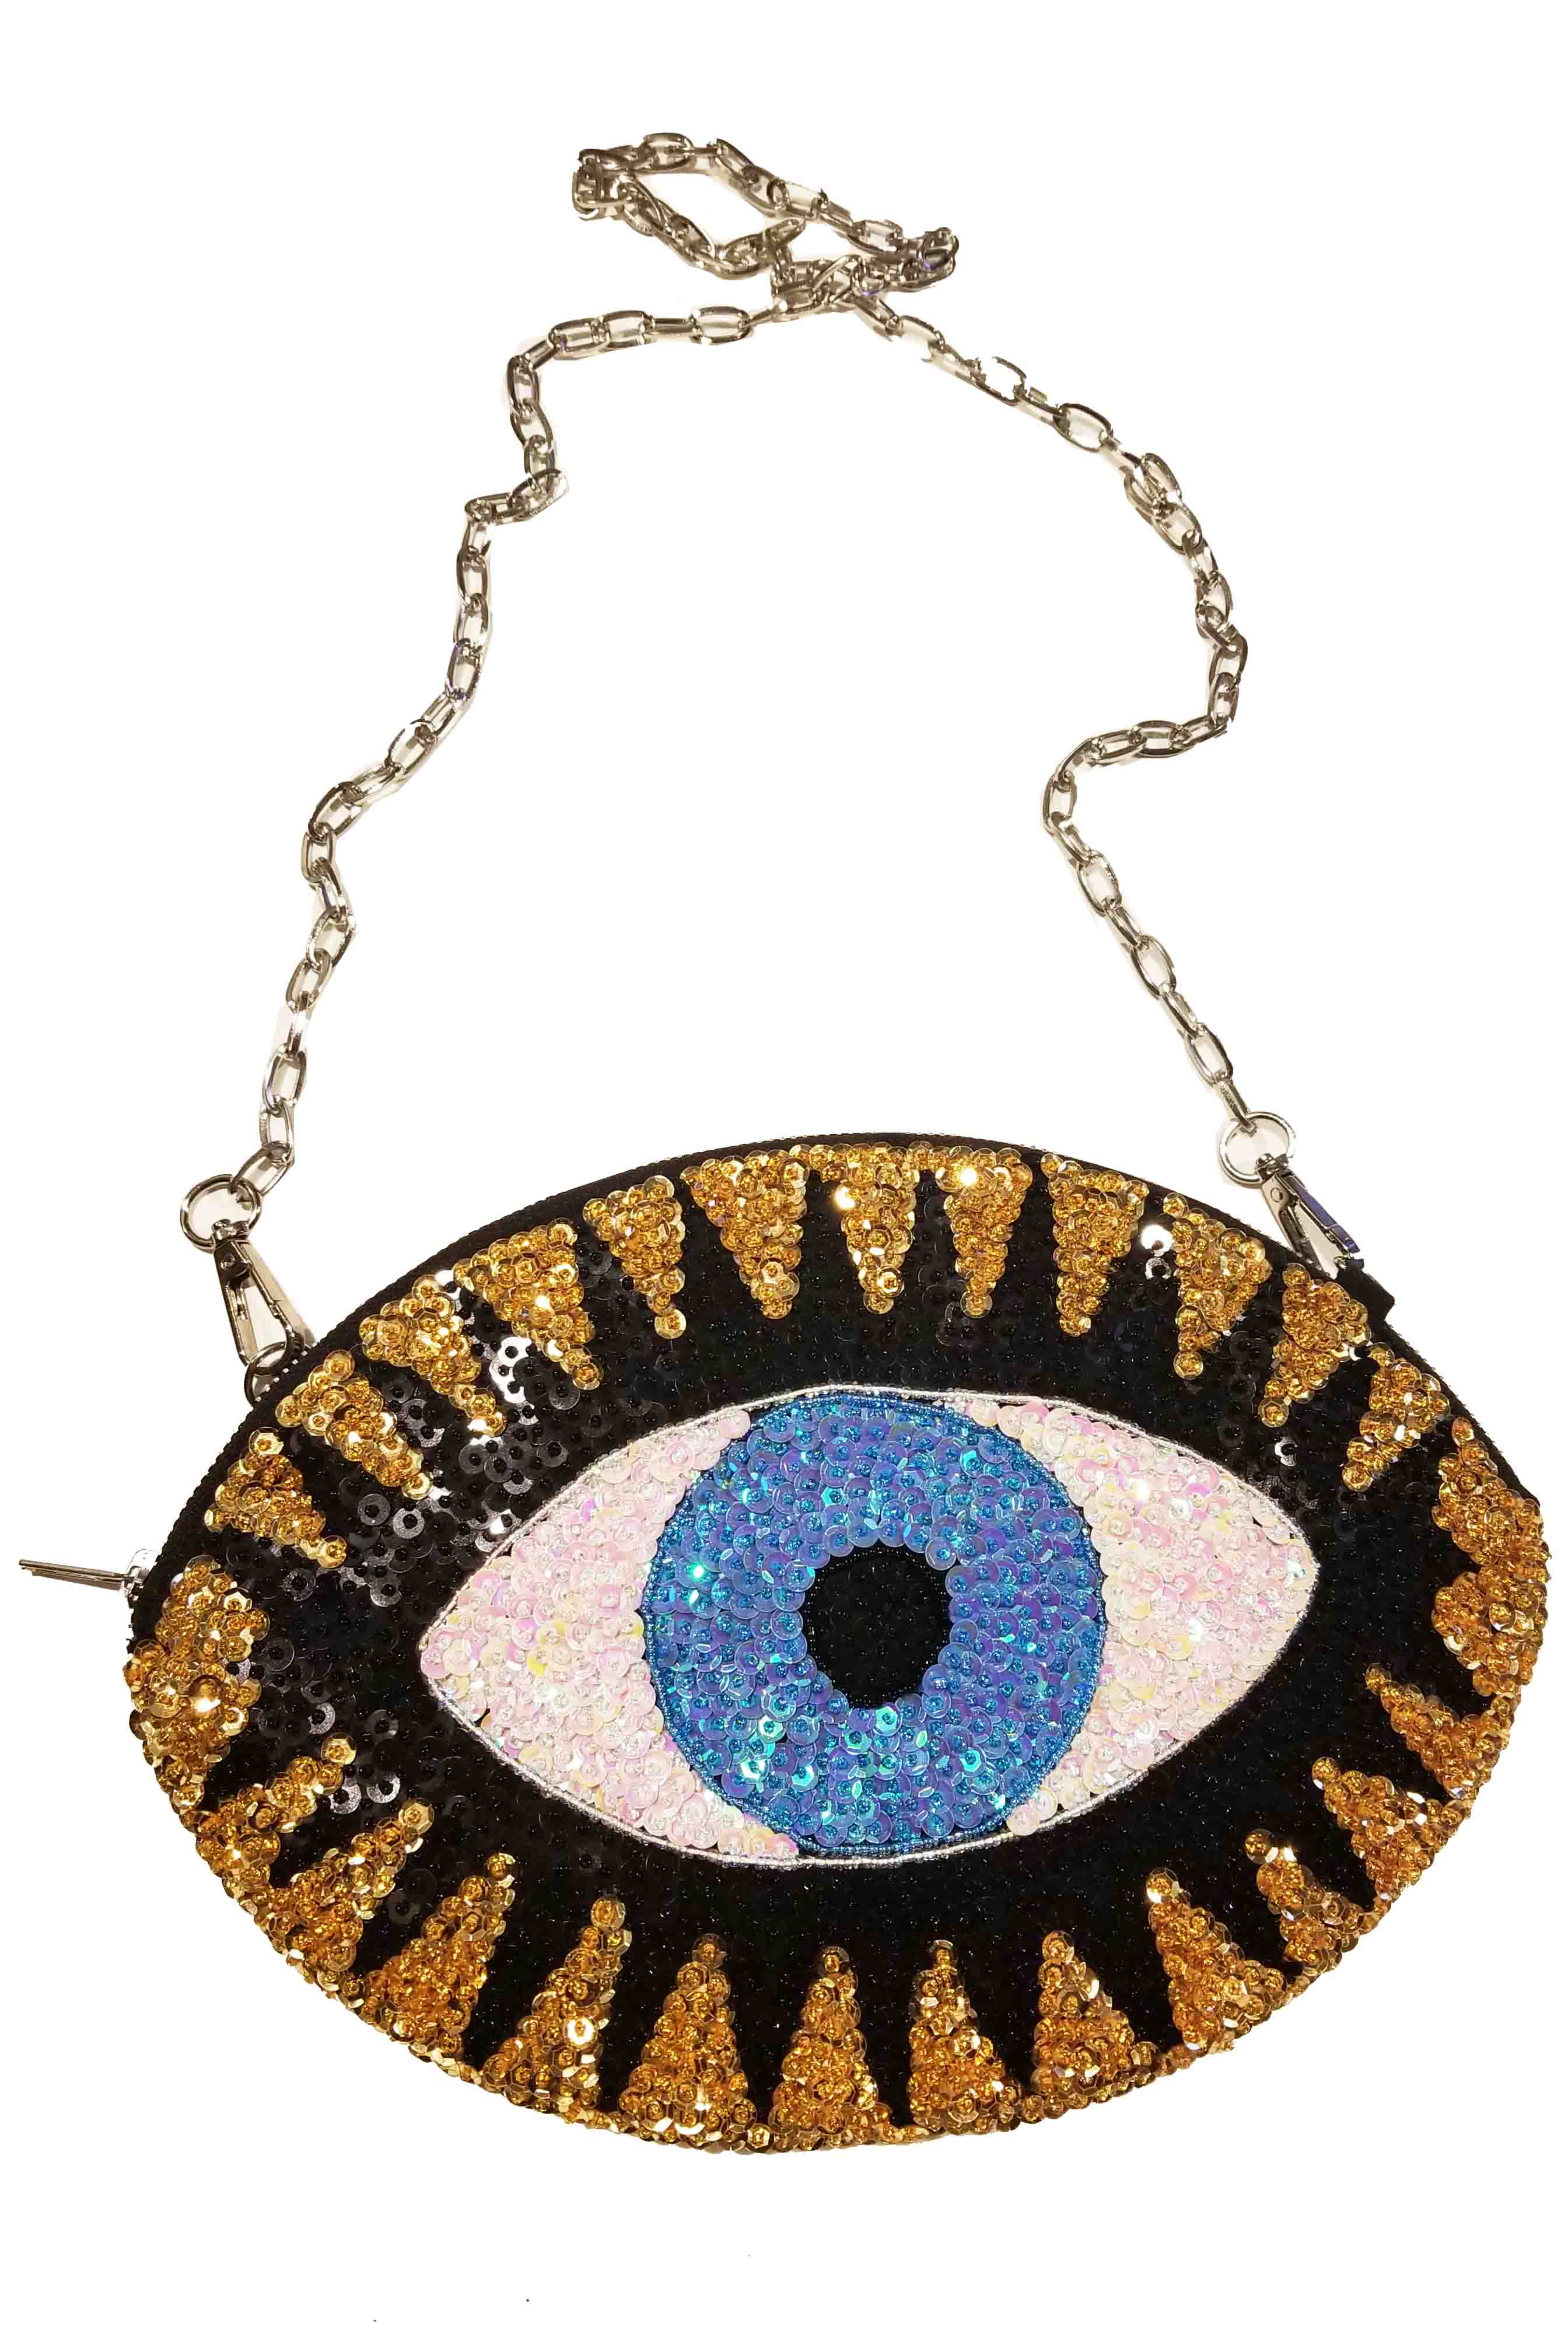 LARGE CLA$$IC 'EVIL EYE' CLUTCH WITH SHOULDER CHAIN